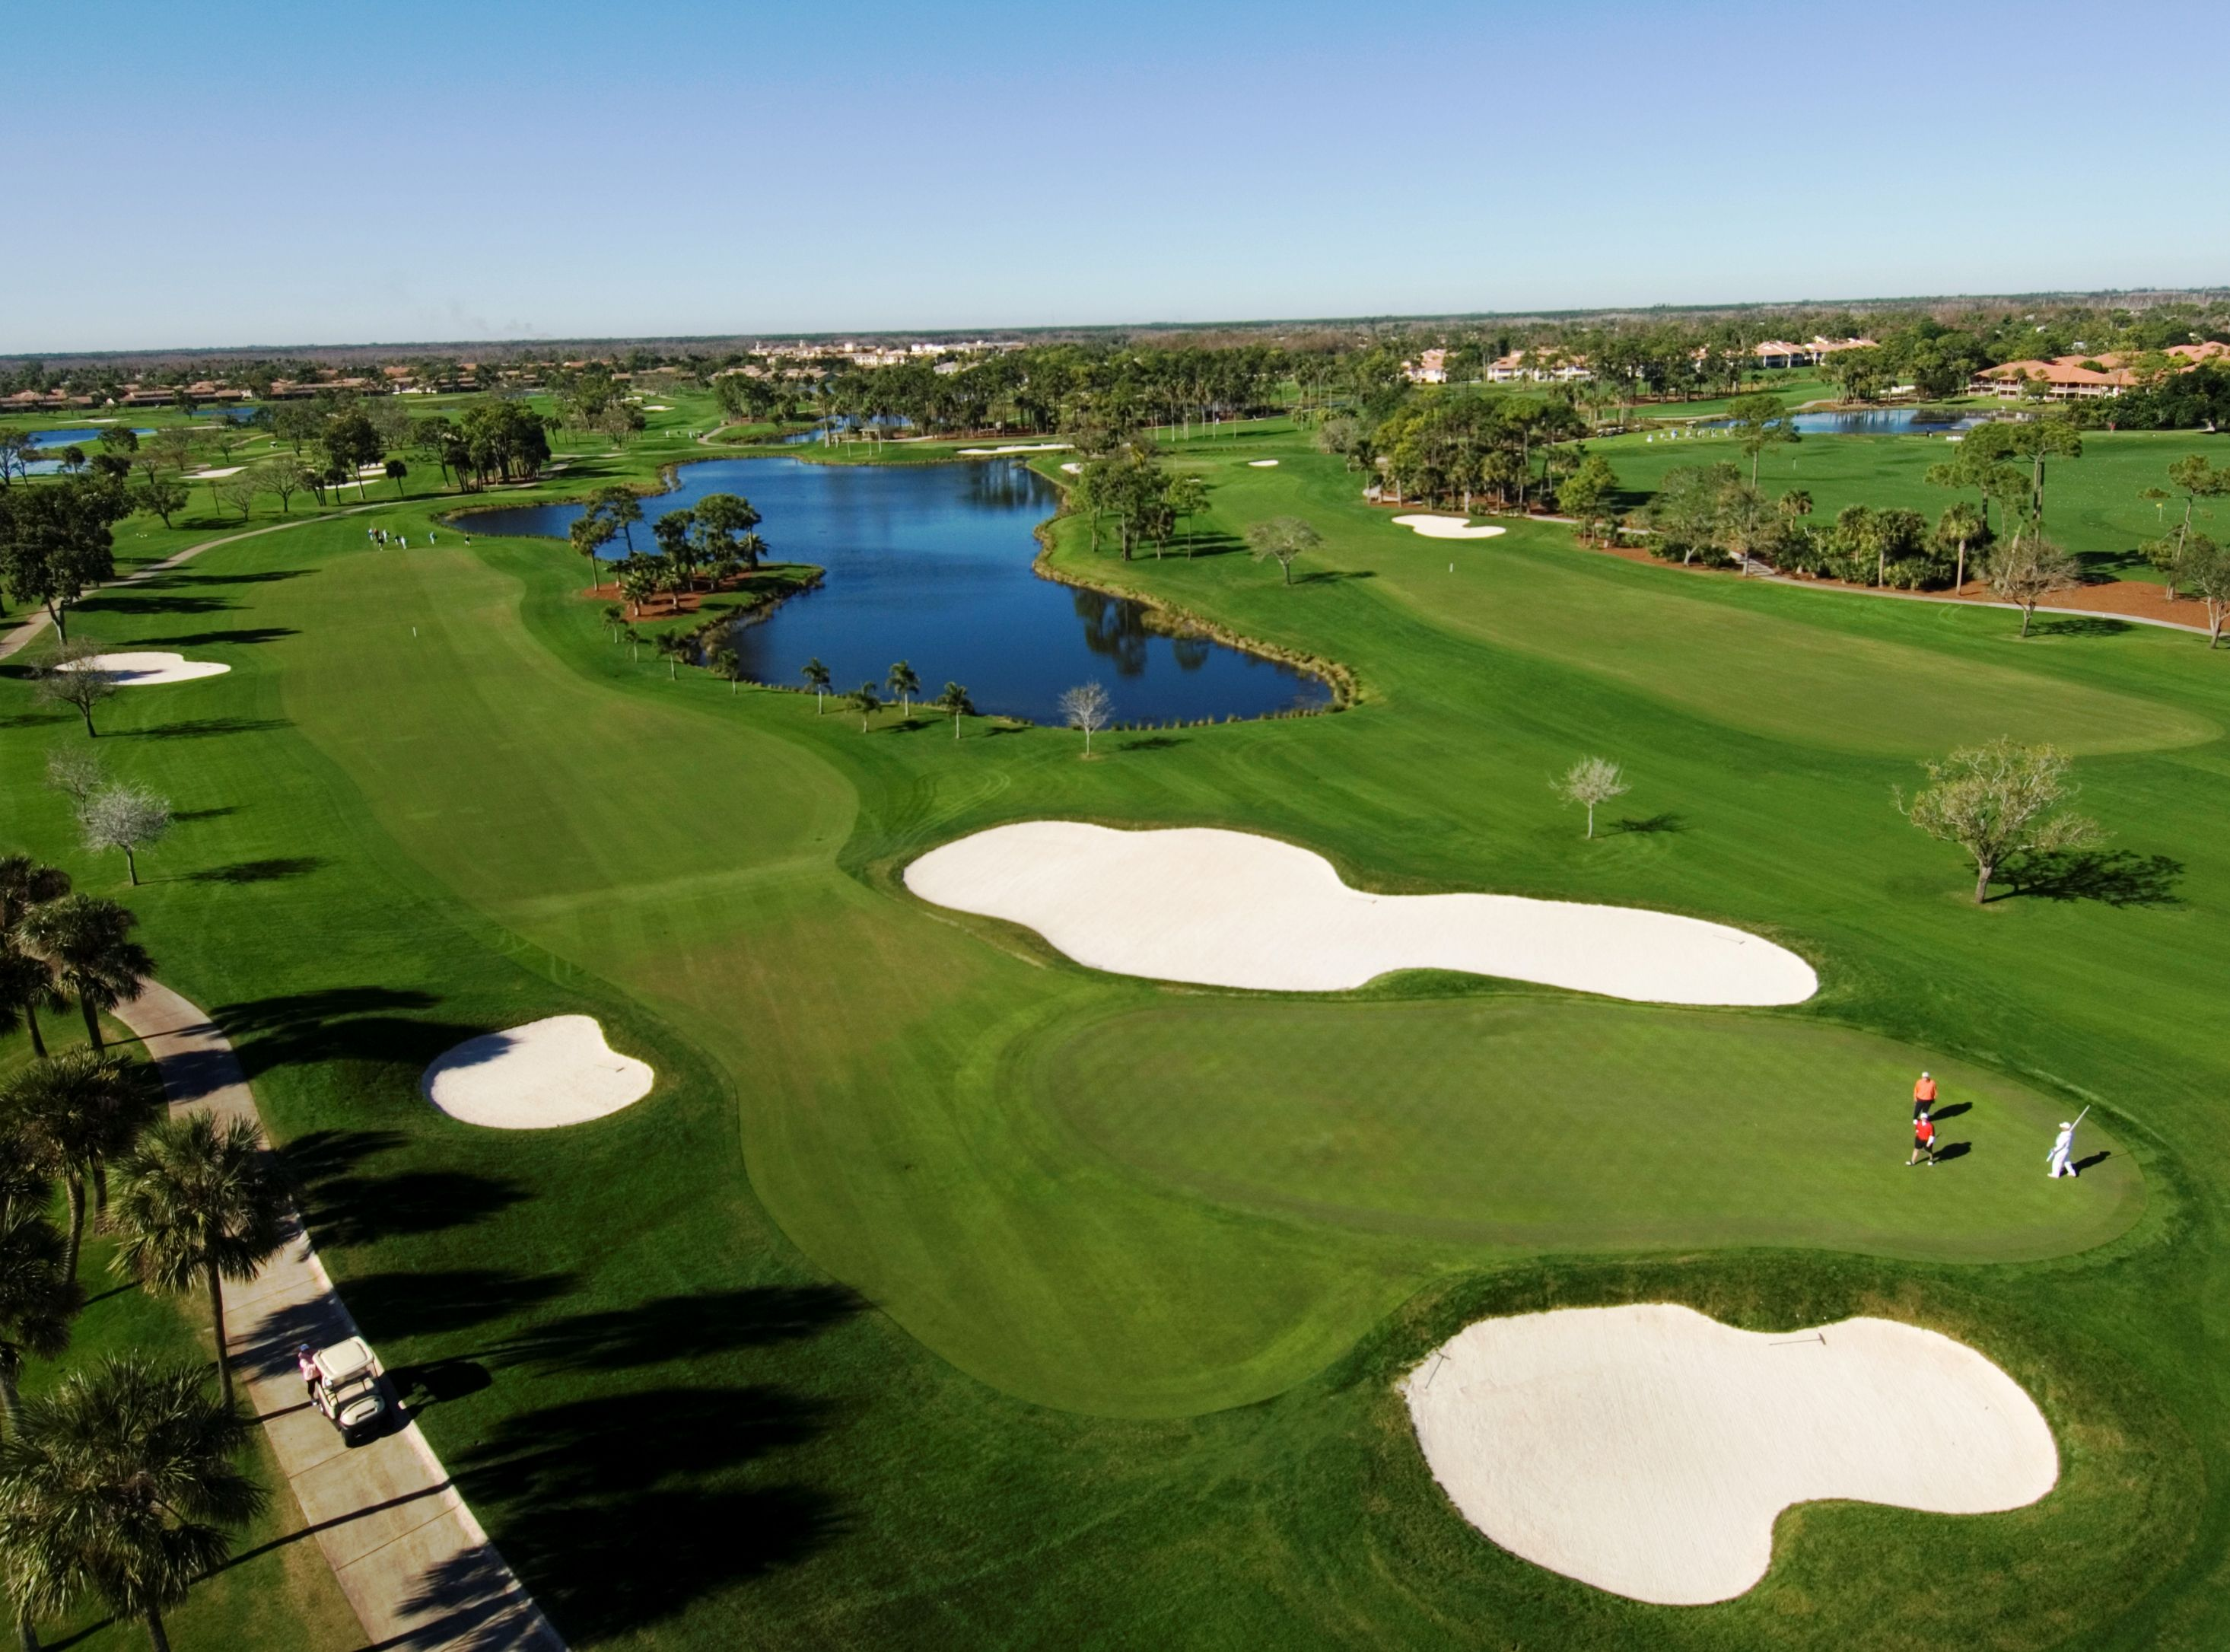 Pga National Resort Spa Golf Course Golf In The Palm Beaches Pinterest Golf And